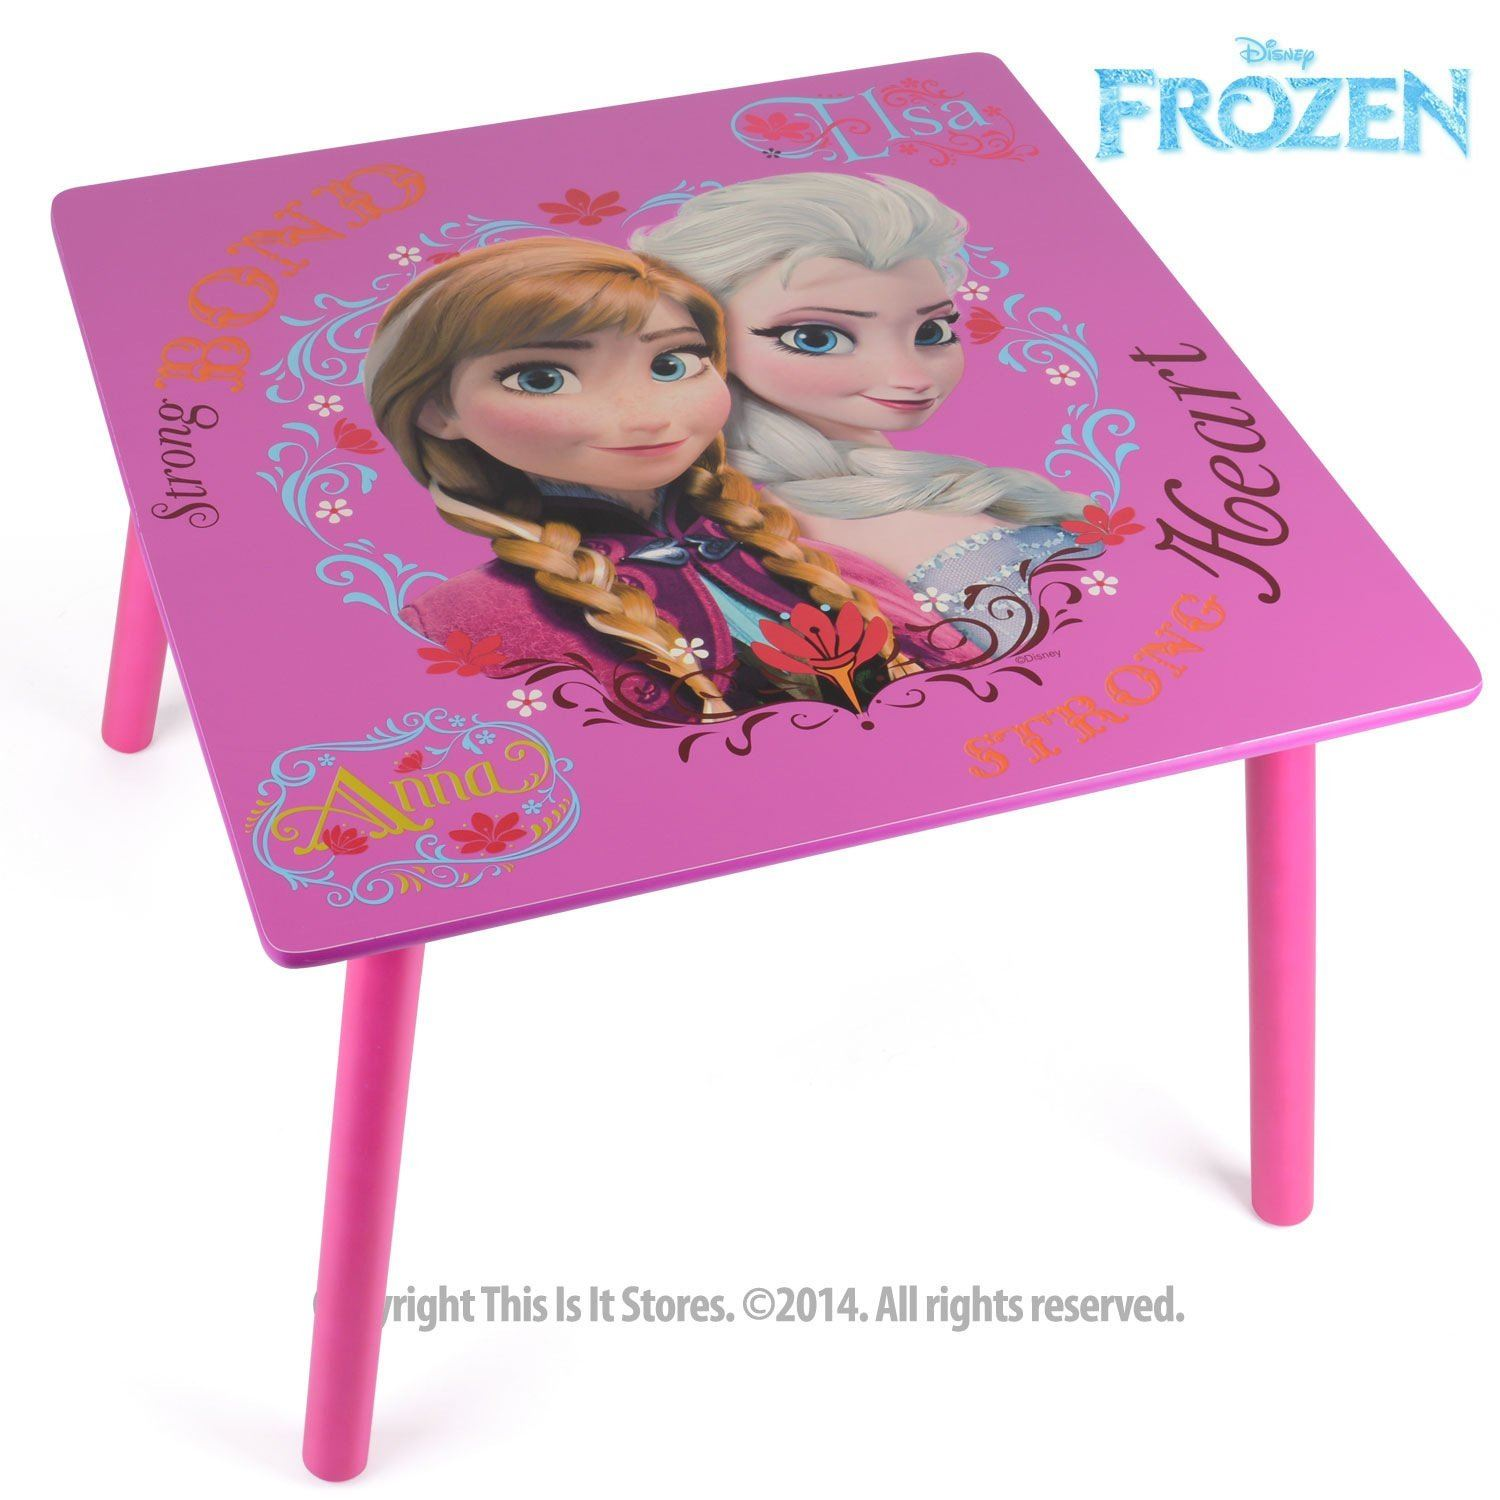 Disney Princess Frozen Furniture Table And Chairs Set